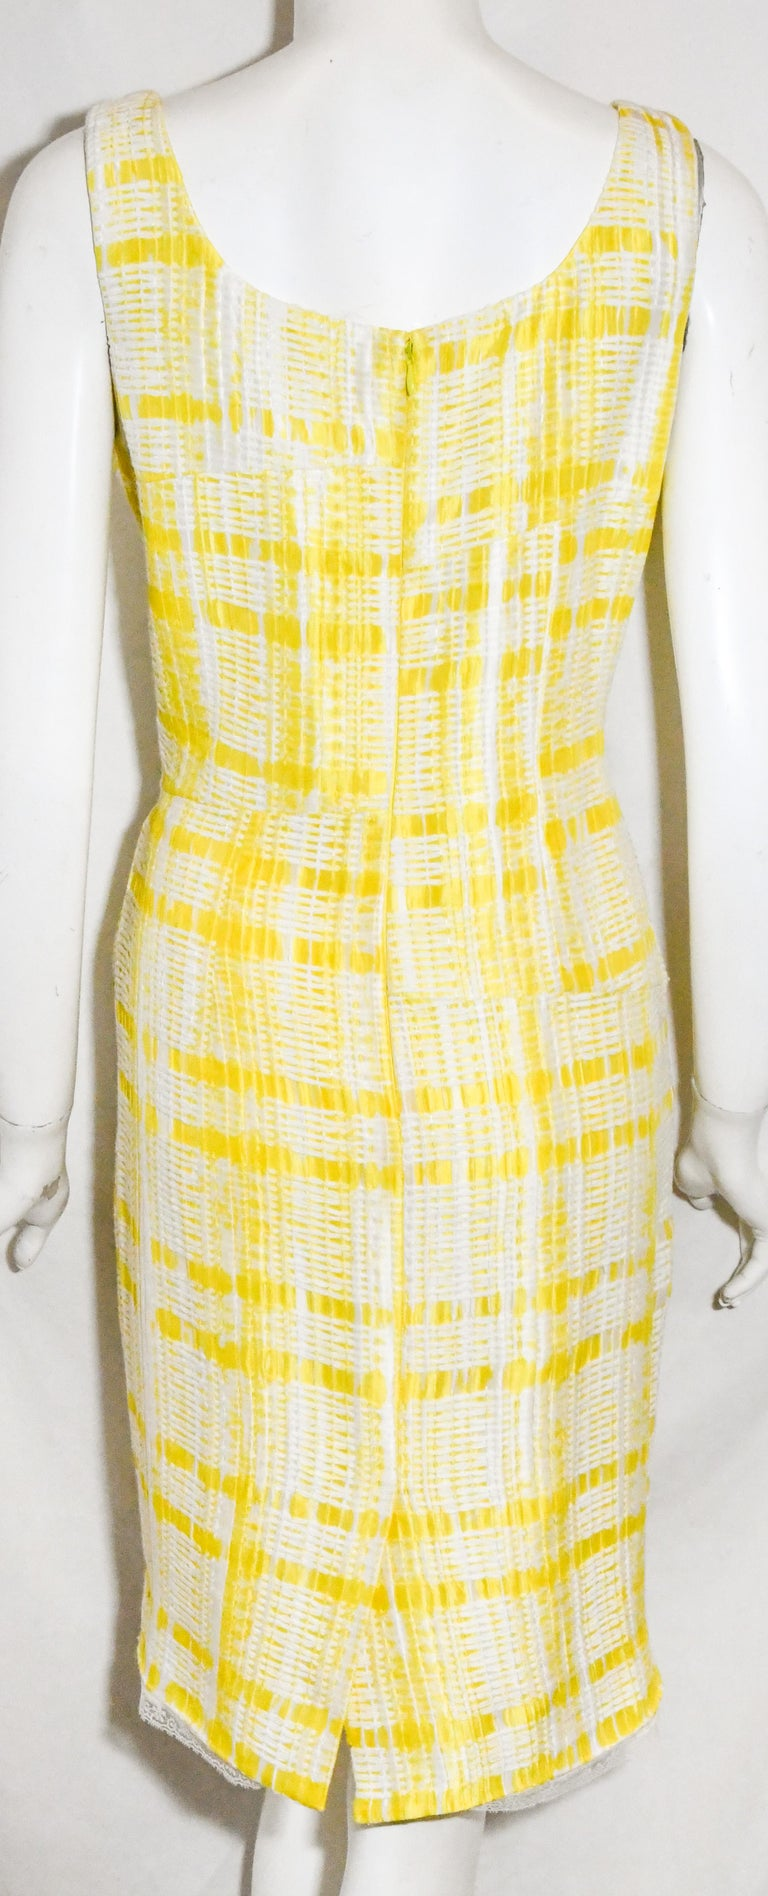 Oscar de la Renta Yellow and White Sleeveless Textured Dress In Excellent Condition For Sale In Palm Beach, FL